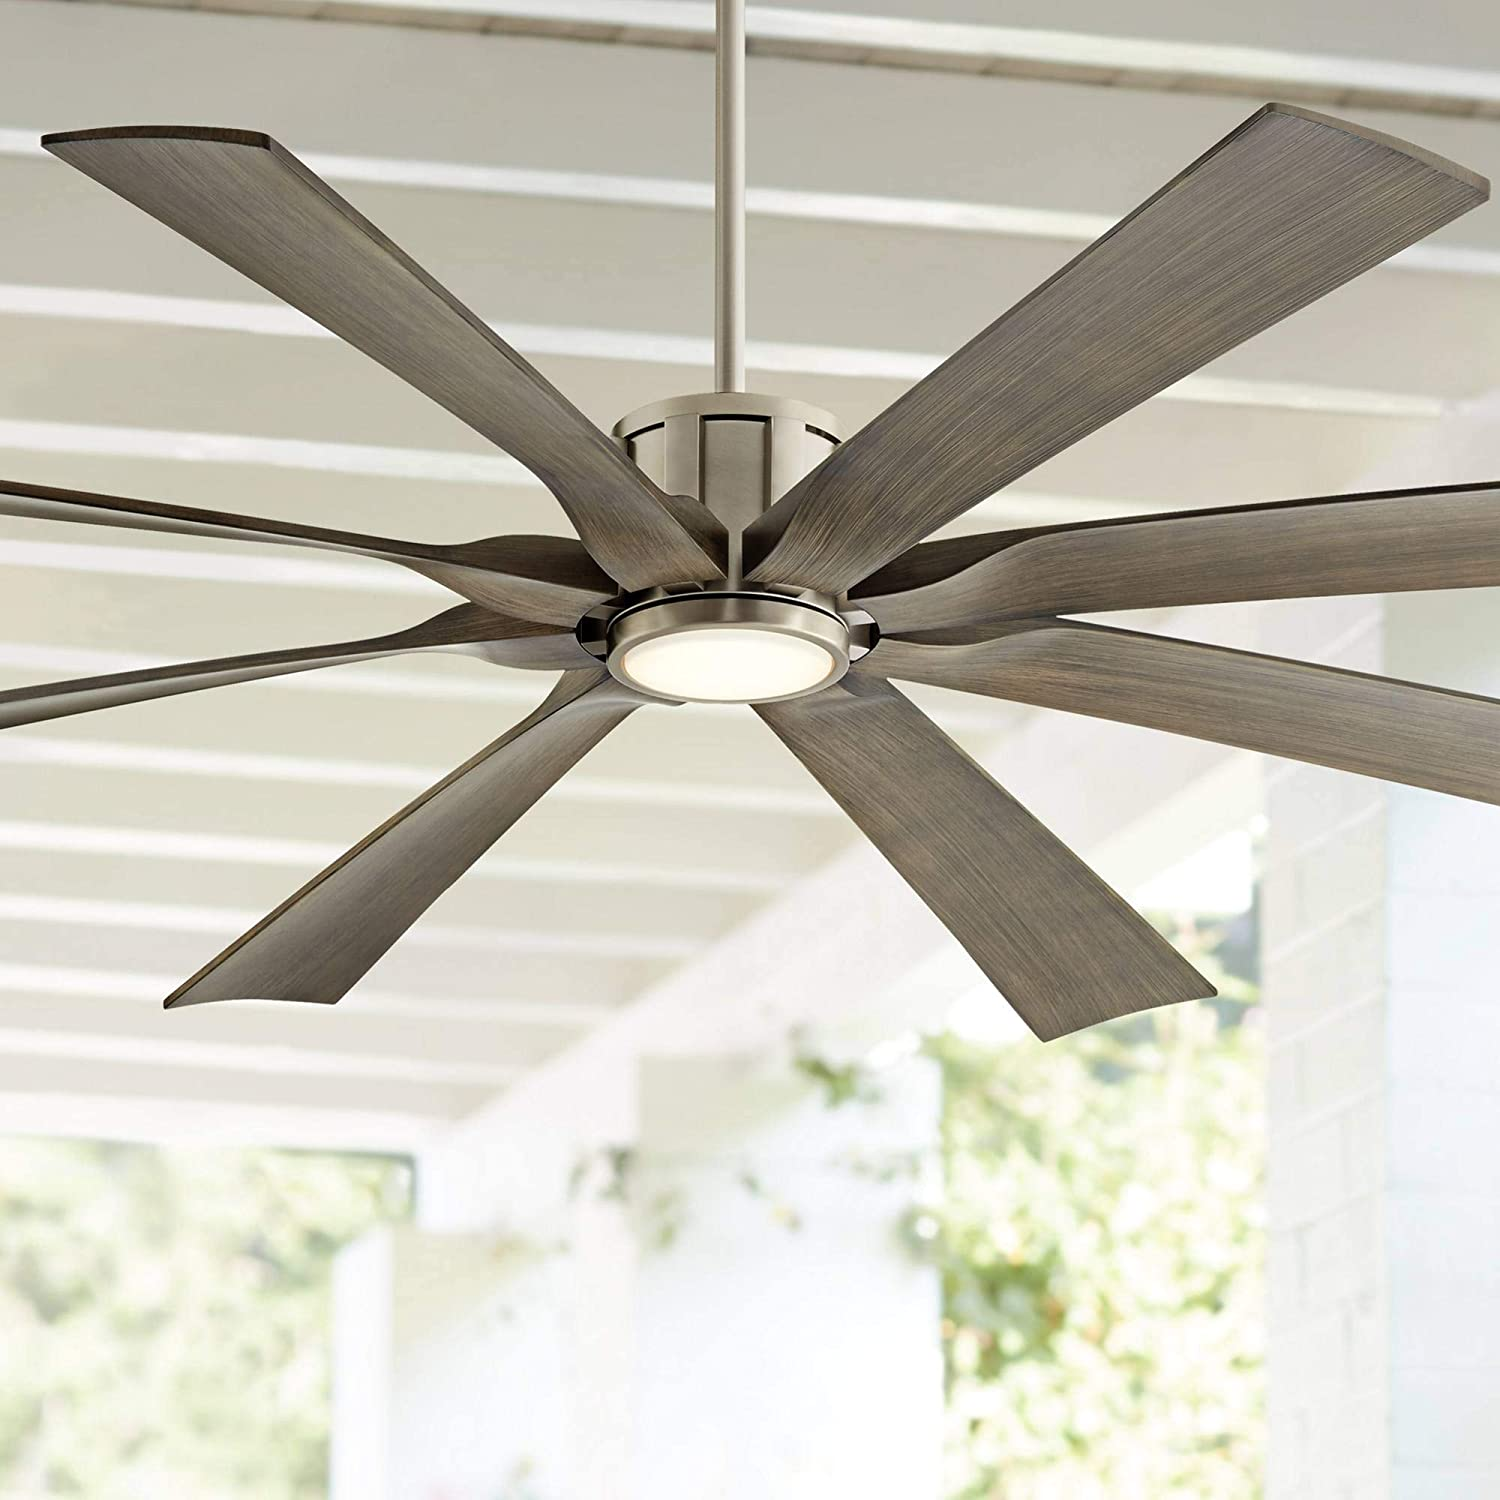 70 The Defender Modern Outdoor Ceiling Fan with Light LED Dimmable Remote Control Brushed Nickel Light Wood Blades Damp Rated for Patio Porch – Possini Euro Design